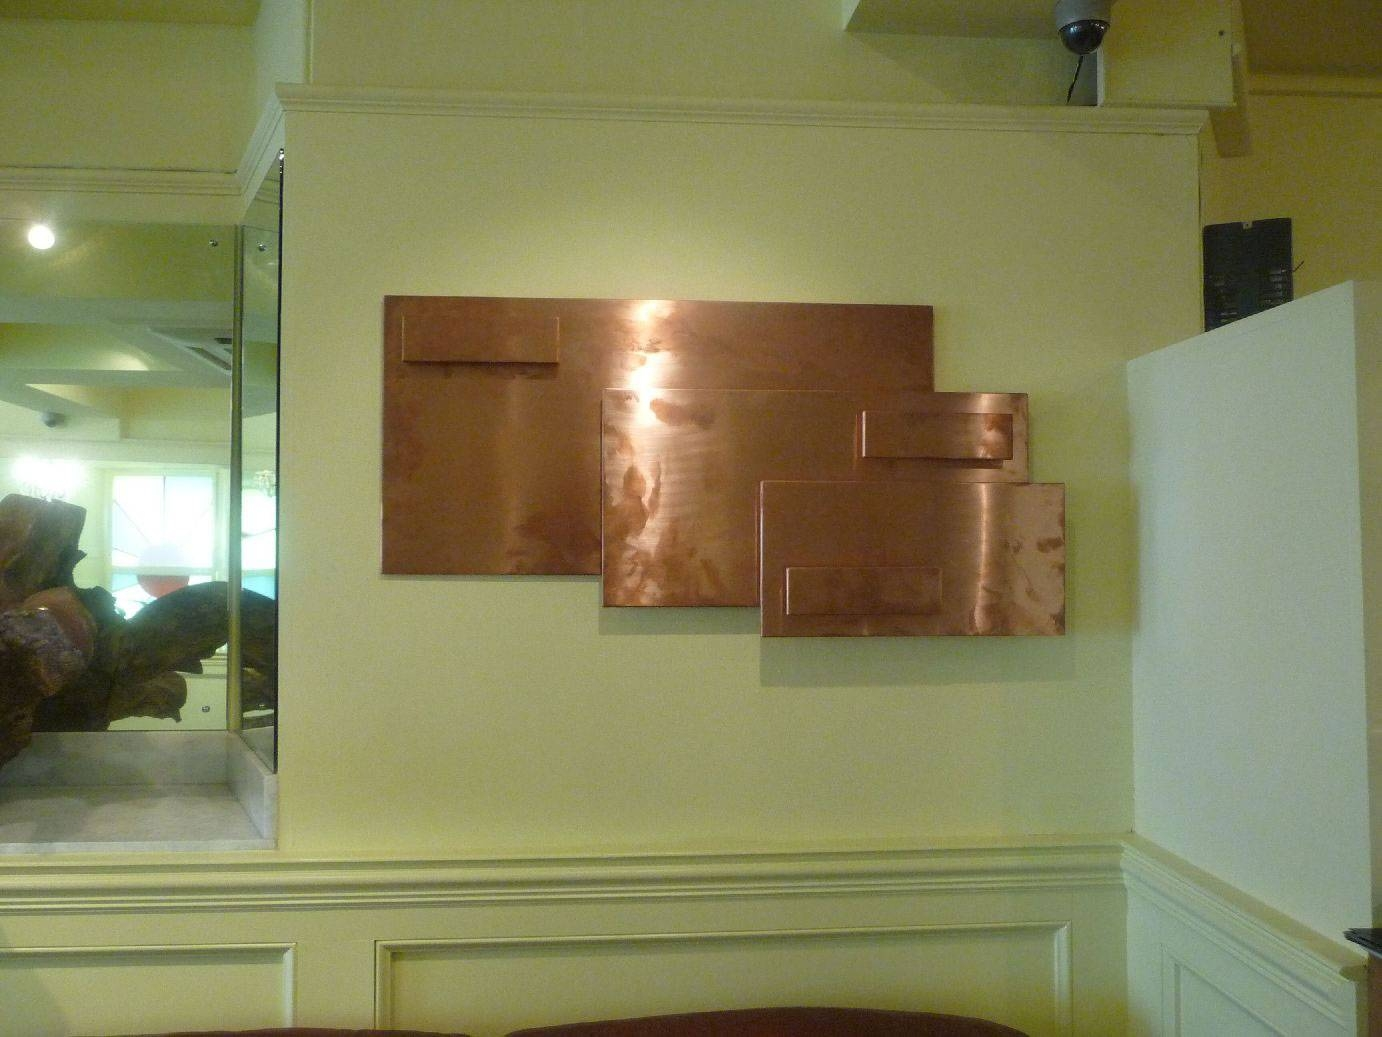 Custom Wall Art | Matal Art For Restaurants | Metal Working Within Most Up To Date Large Copper Wall Art (View 30 of 30)